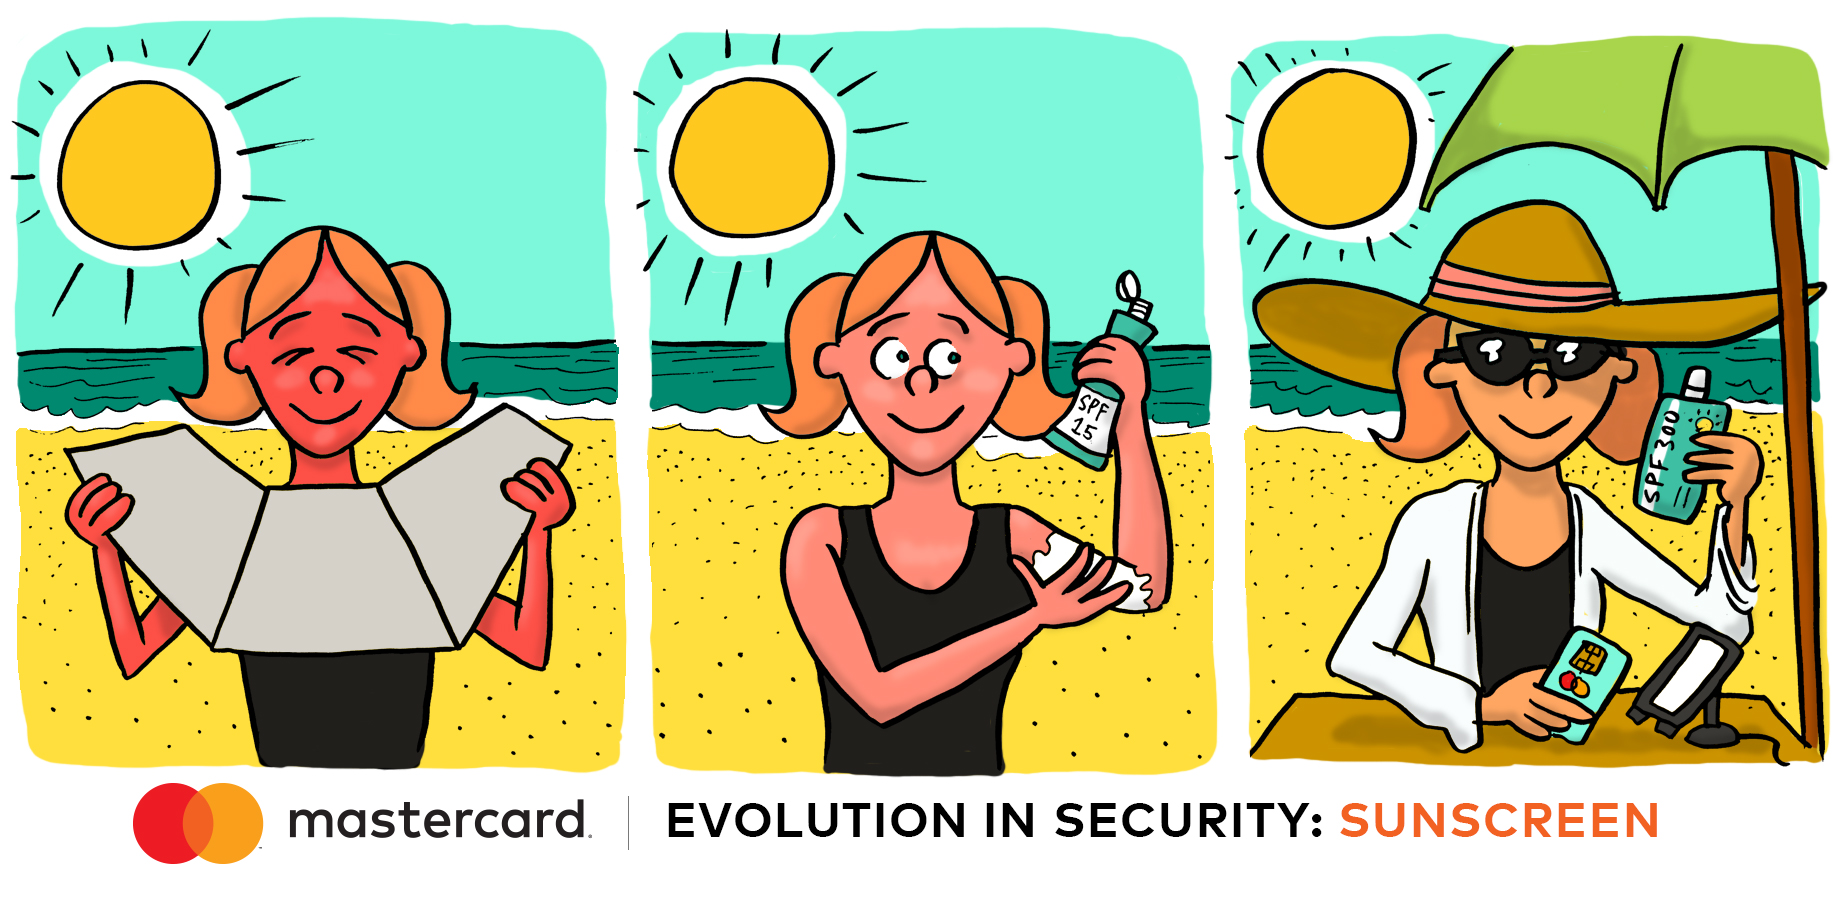 Don't get burned – secure chip card transaction in just a few seconds.